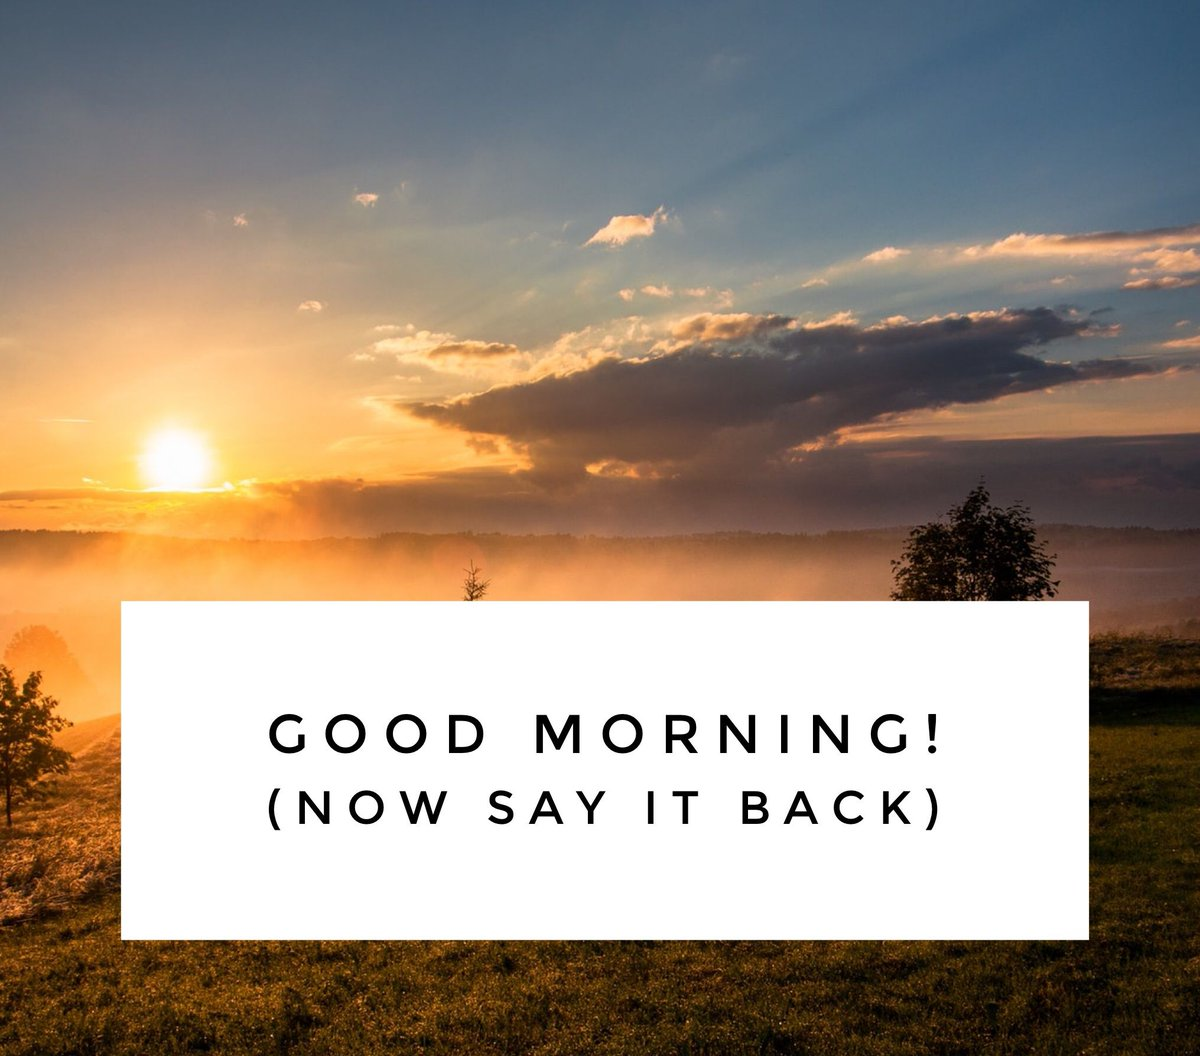 Gimme my good morning...don't leave a girl hanging #positivity #affirmations #blackdollarsmatter #blackmarketplace #homebusinesstips #simplyclassy #positivethinking #mondaymotivation #selfcare #wealthmindset #startupswag #startupcourse #taxplanning #payroll #creditrepairpic.twitter.com/SY4naQBT4Y